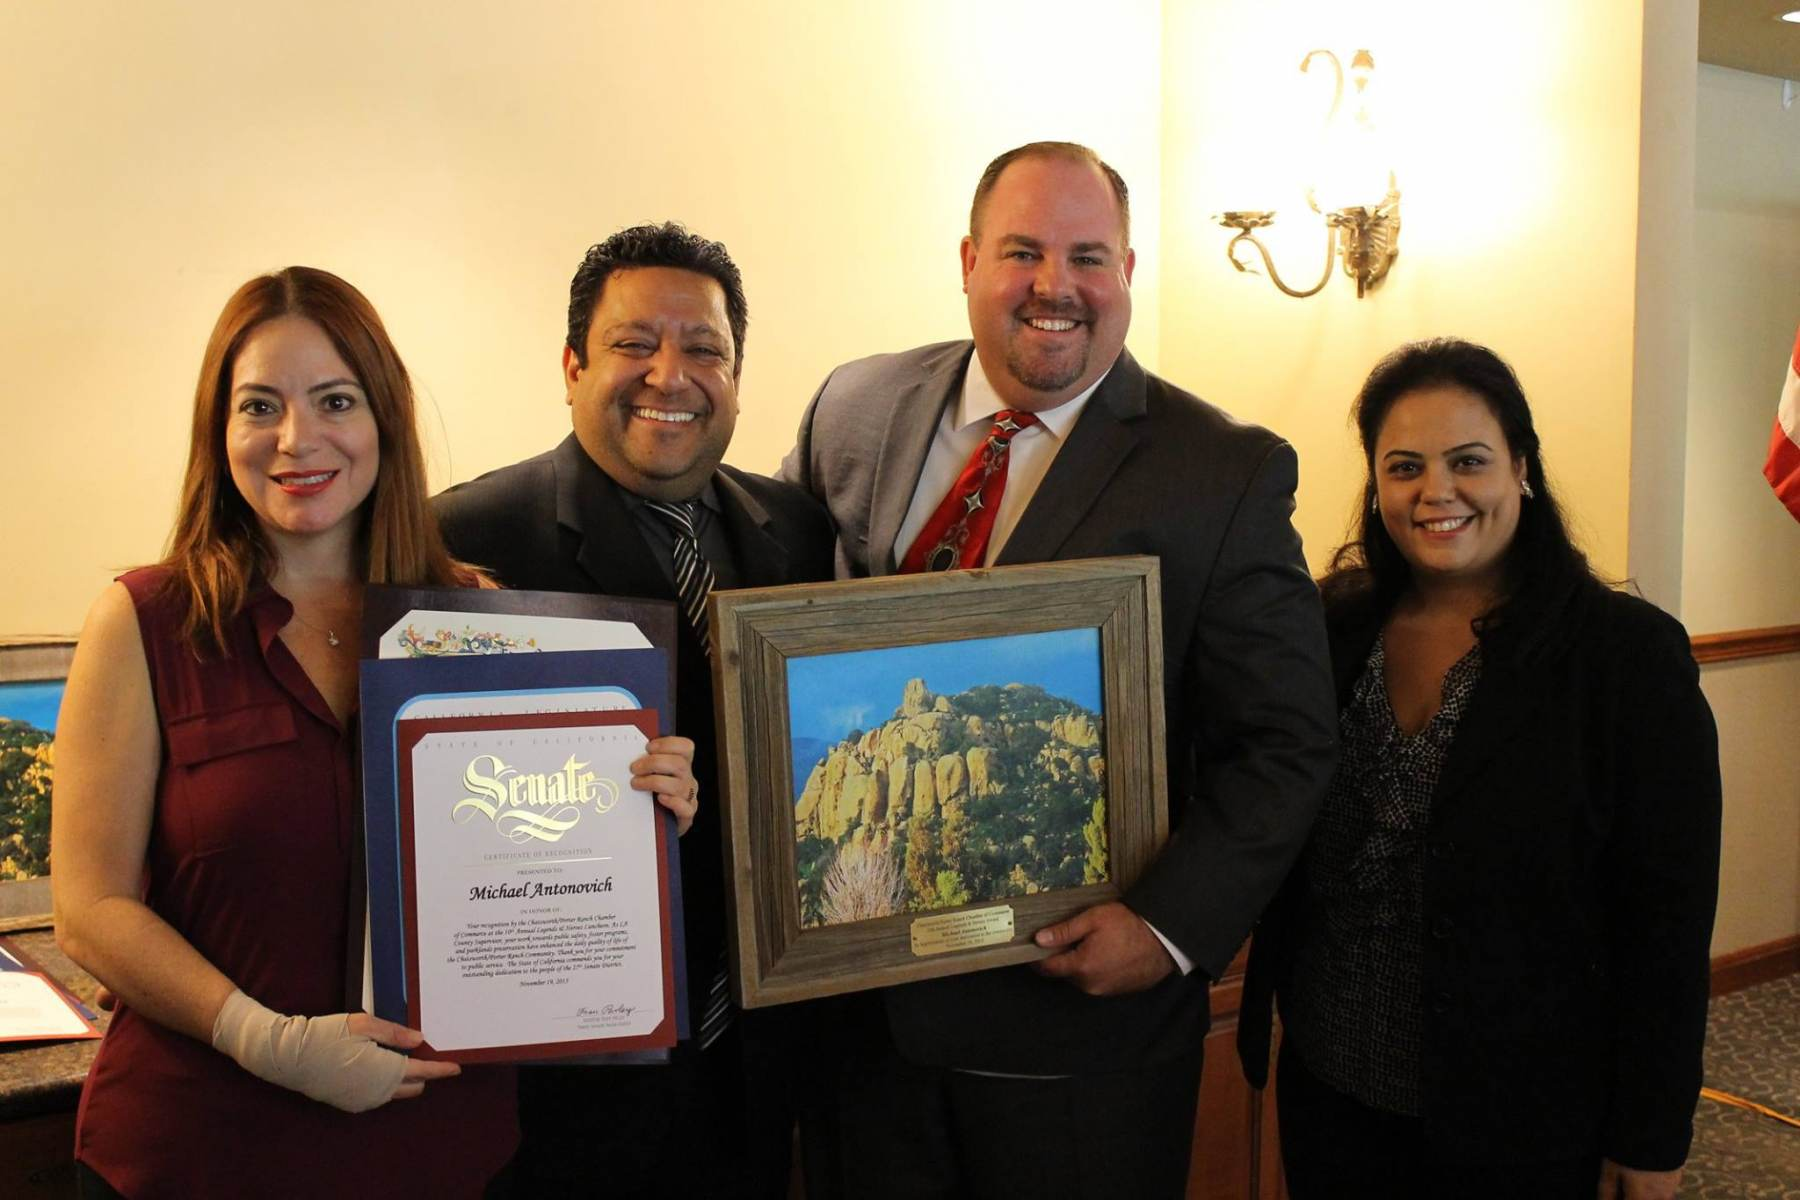 Jerrod-DeGonia-accepting-the-Legends-and-Heroes-award-on-behalf-of-Michael-Antonovich.